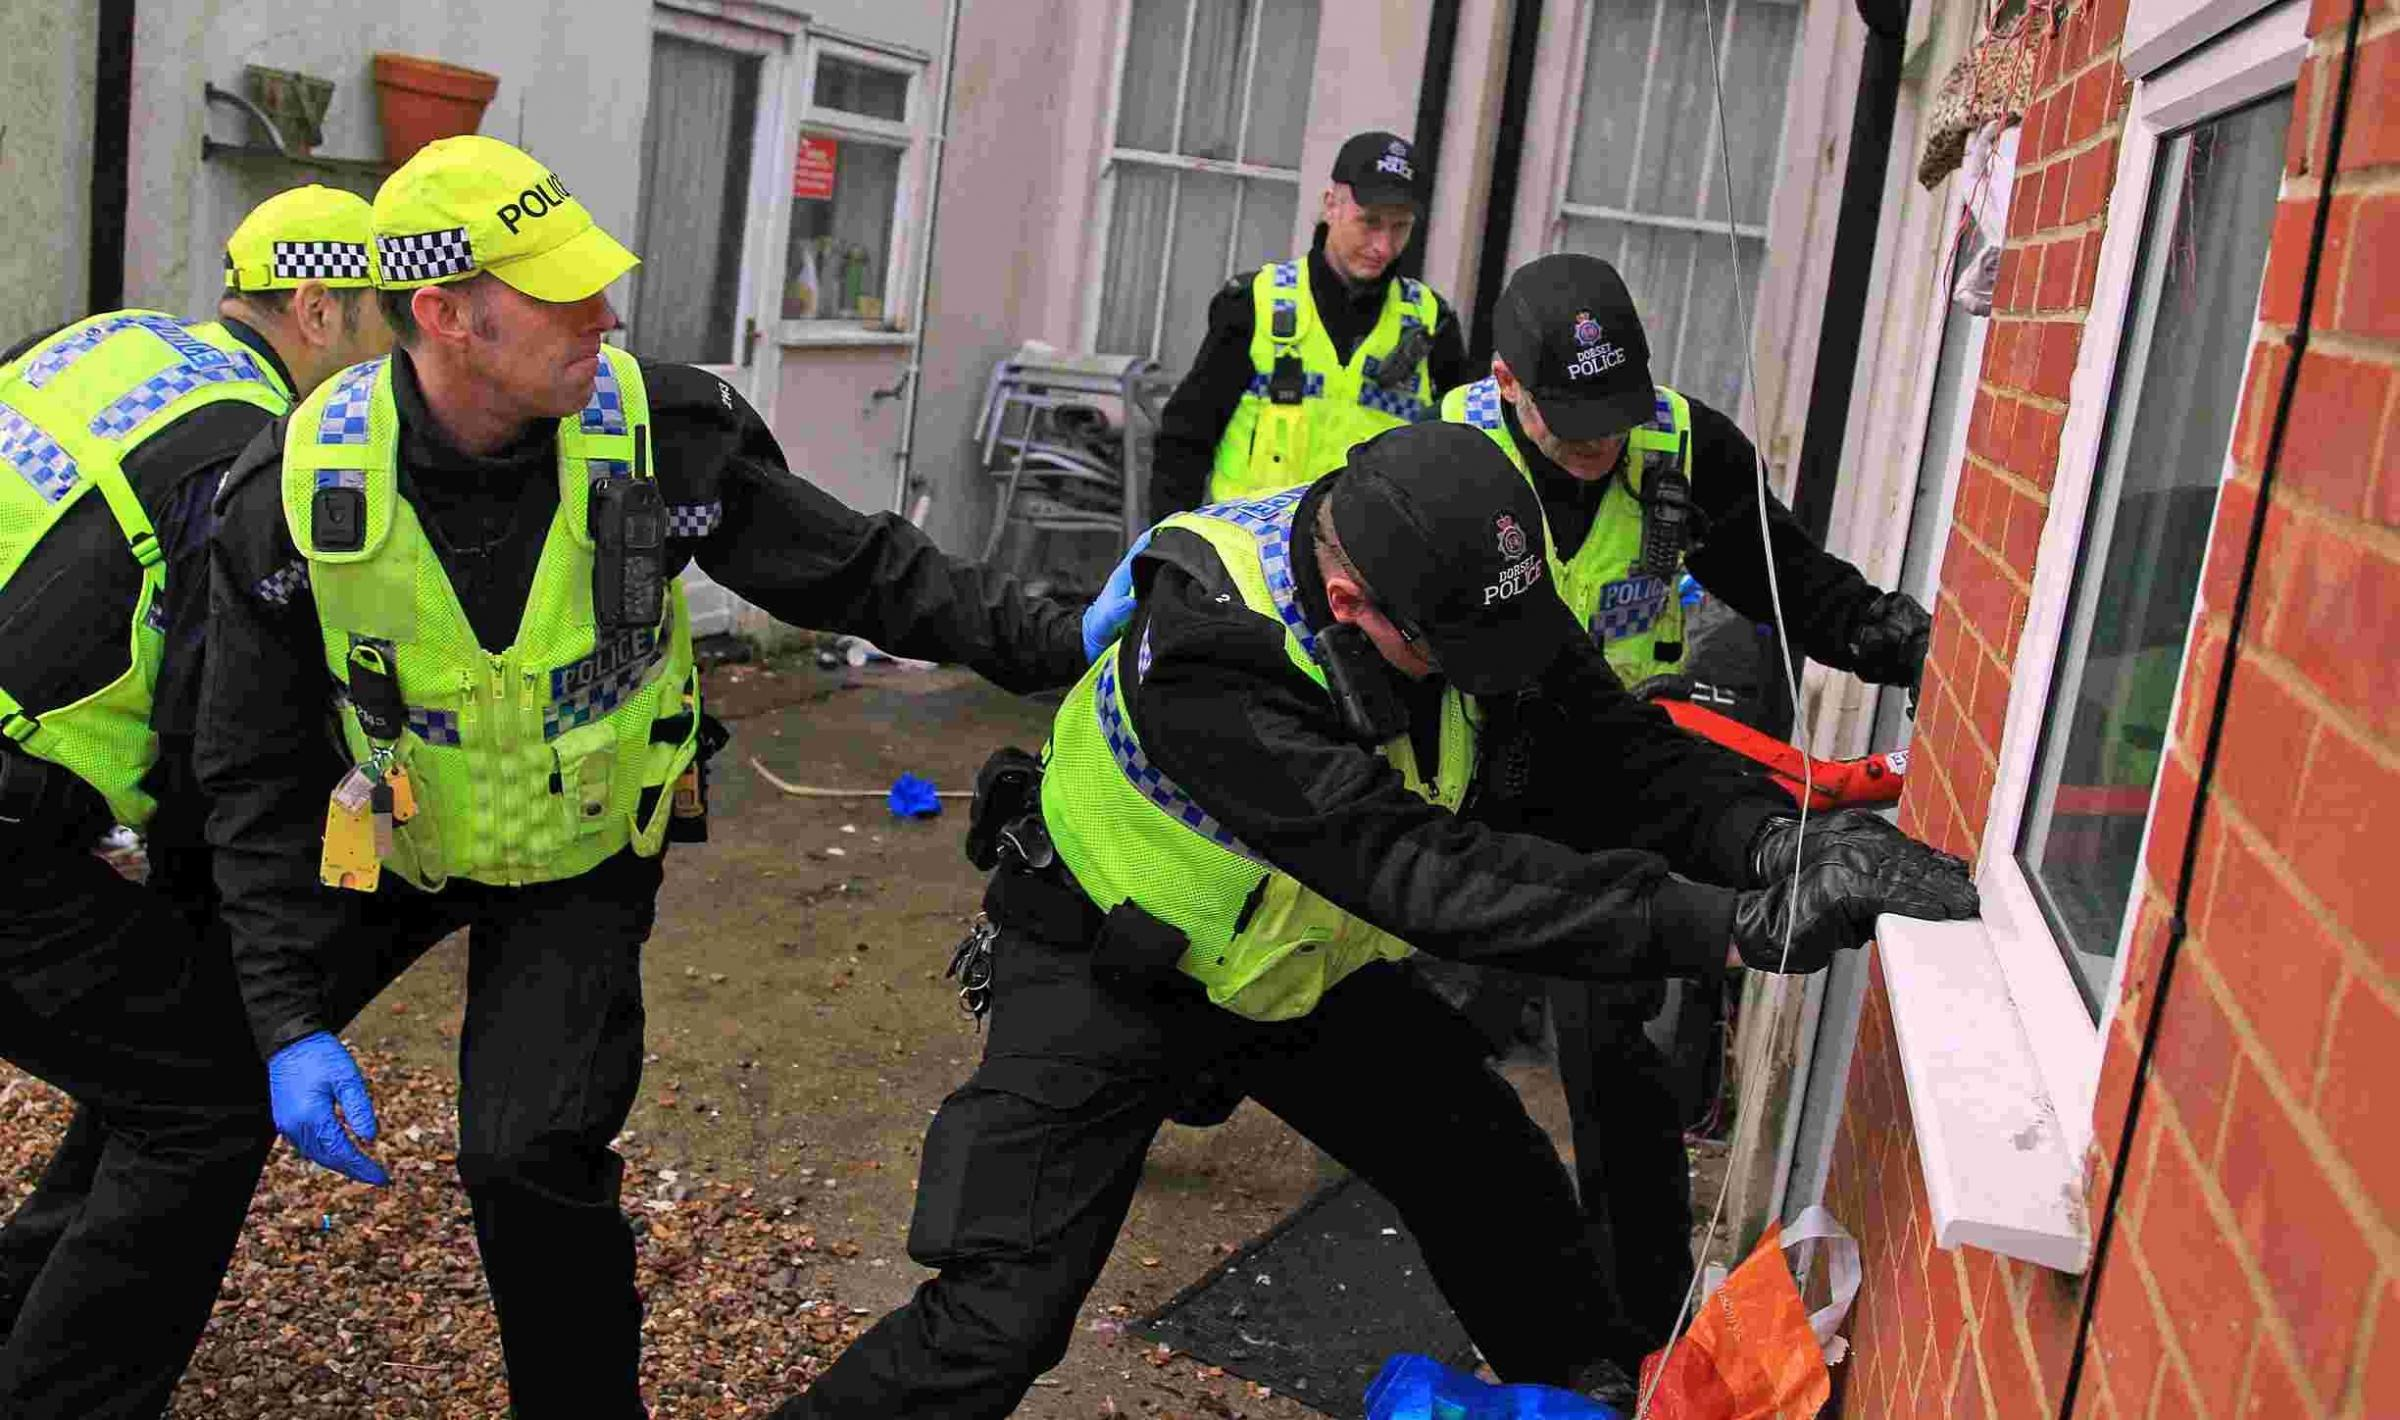 Police raid carried out in Boscombe as part of burglary crackdown